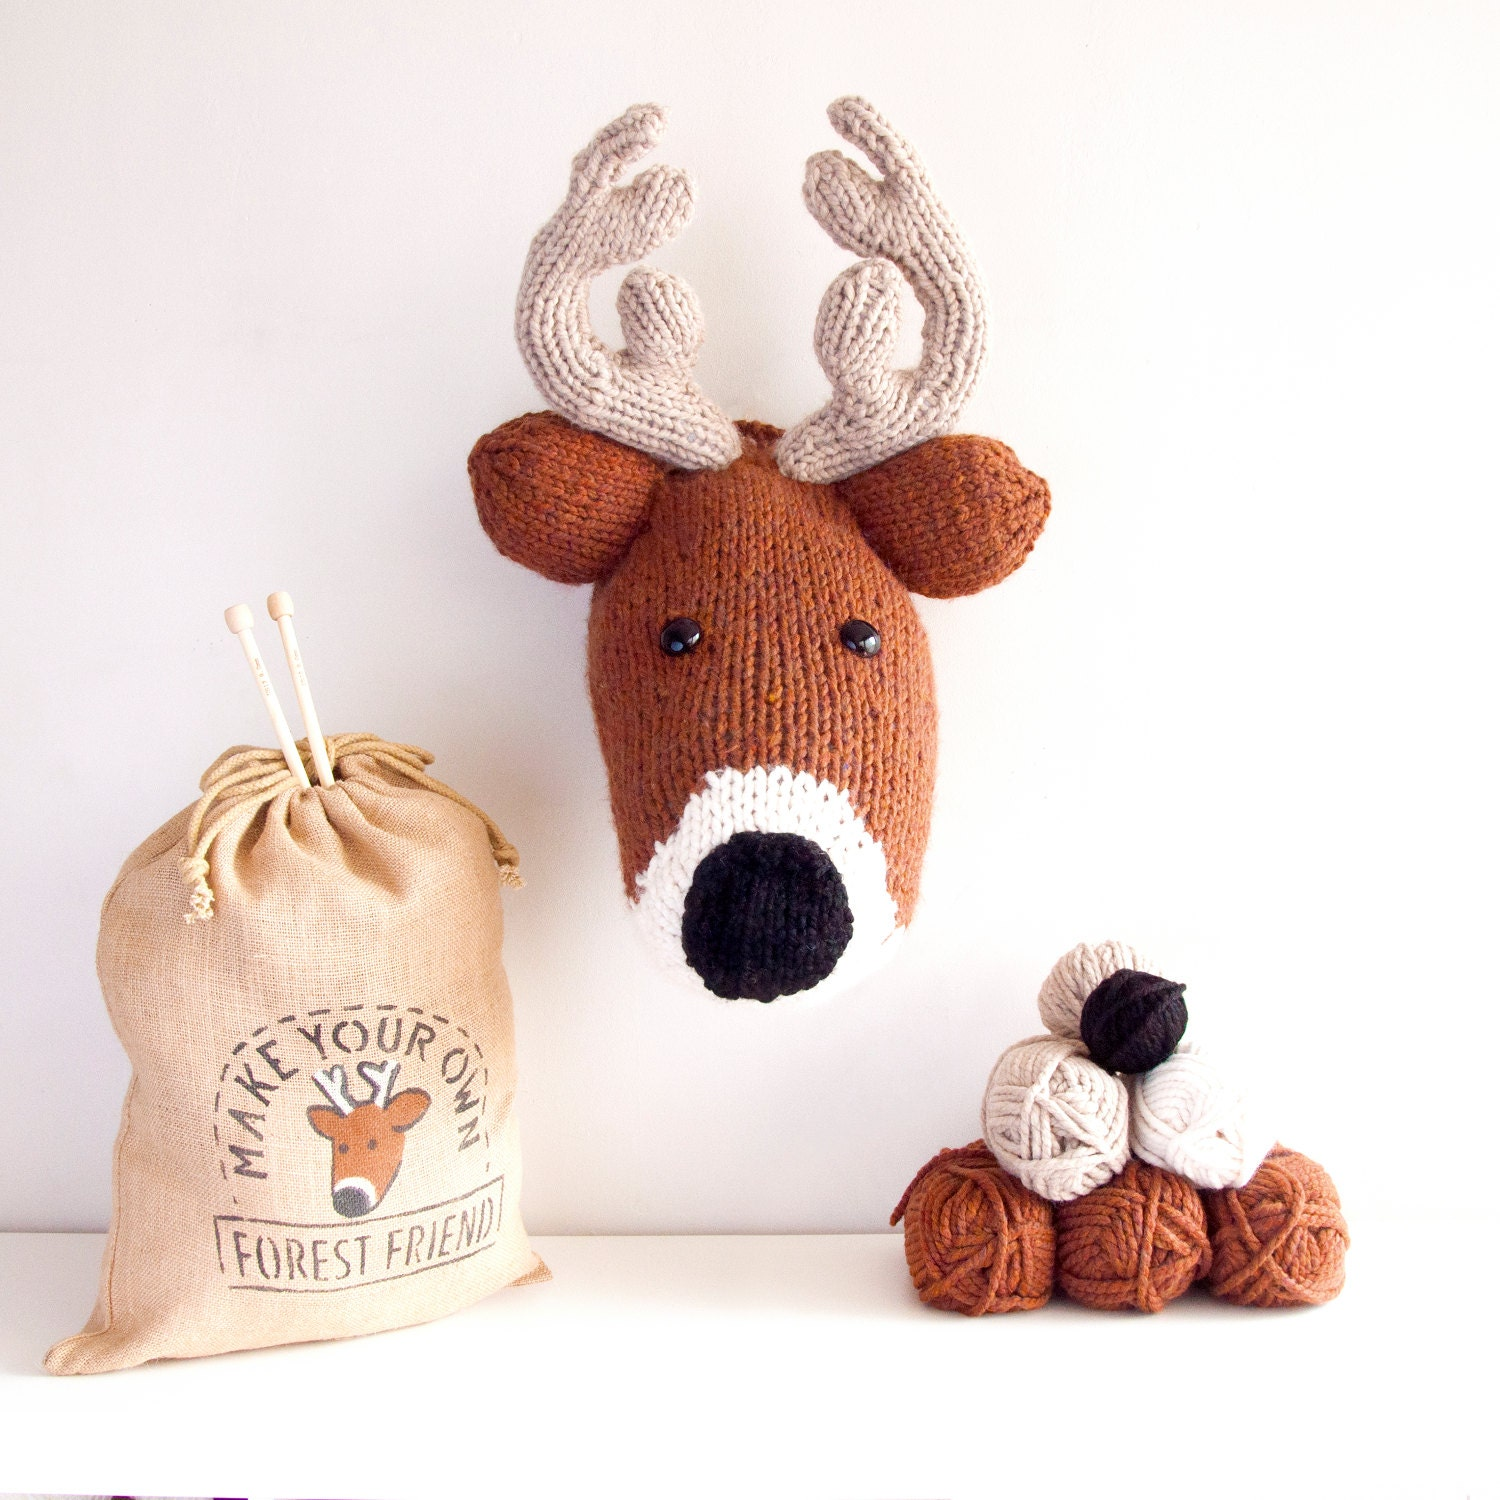 Faux Deer Knitting Kit Make Your Own Forest Friend DIY